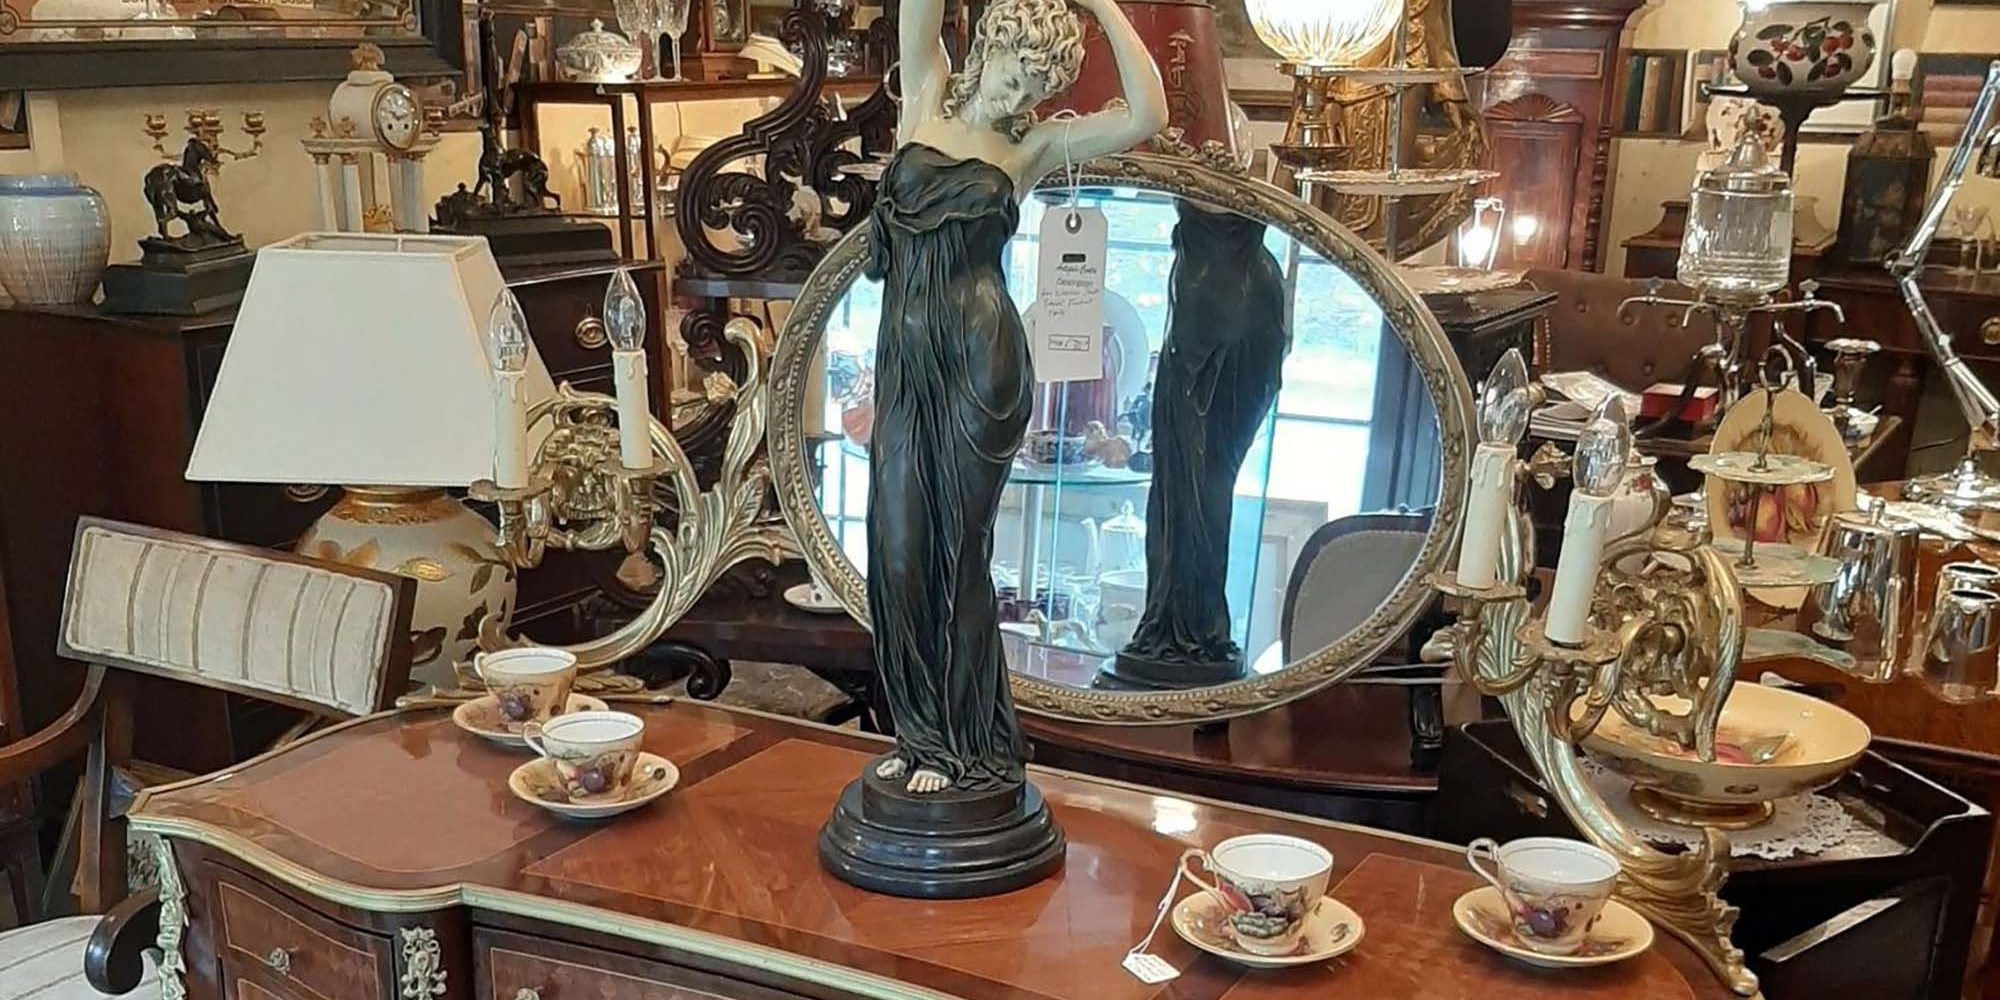 Antiques Interiors in Glaslough, Monaghan